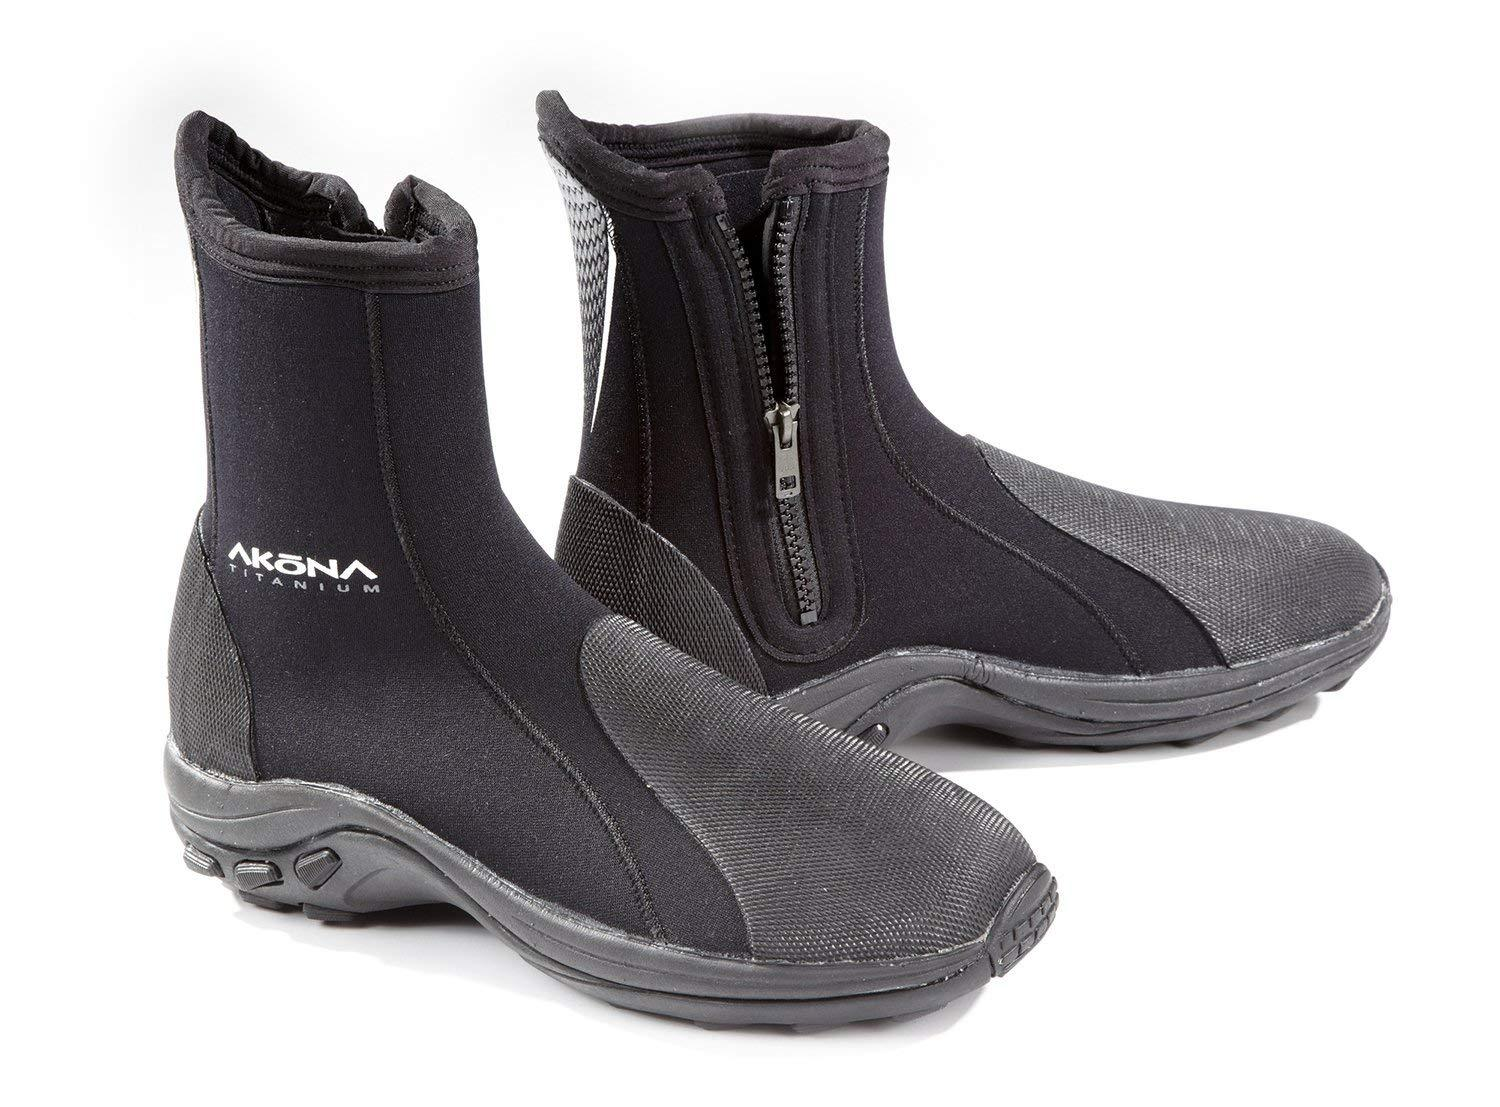 Akona 3.5mm Nylon II Neoprene Deluxe Molded Sole Water Boot